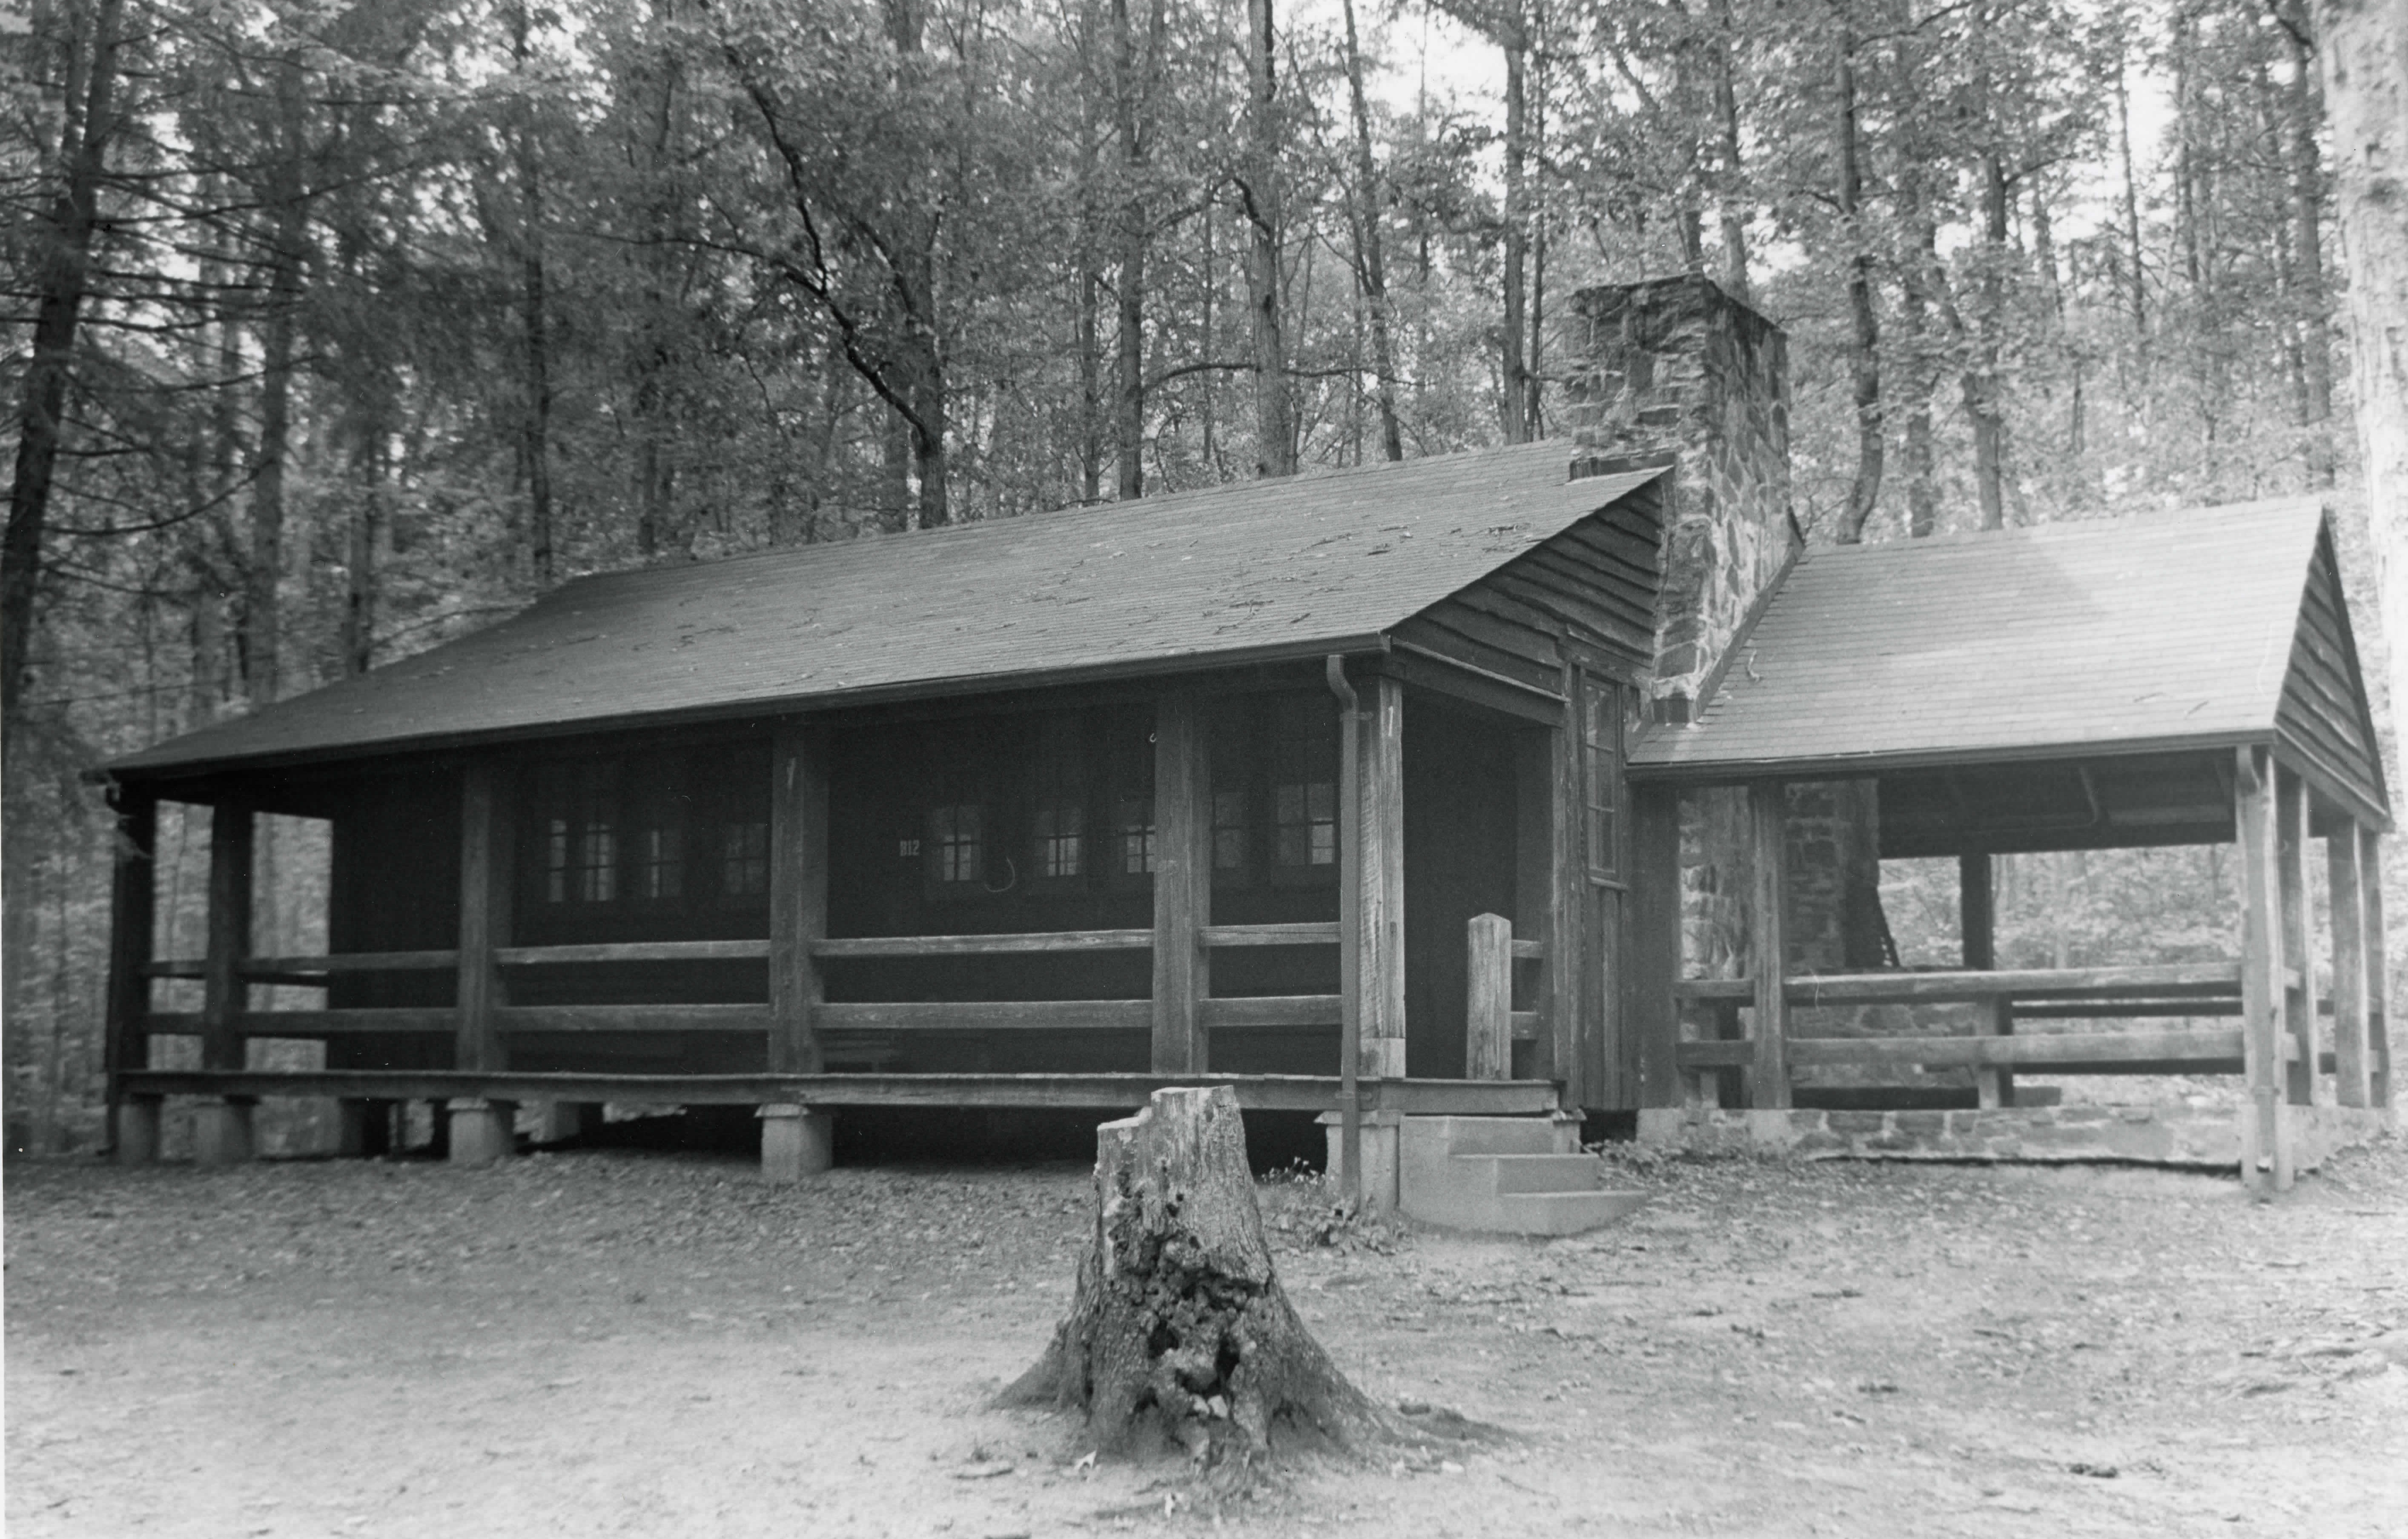 ECW Architecture at Prince William Forest Park (MPD)